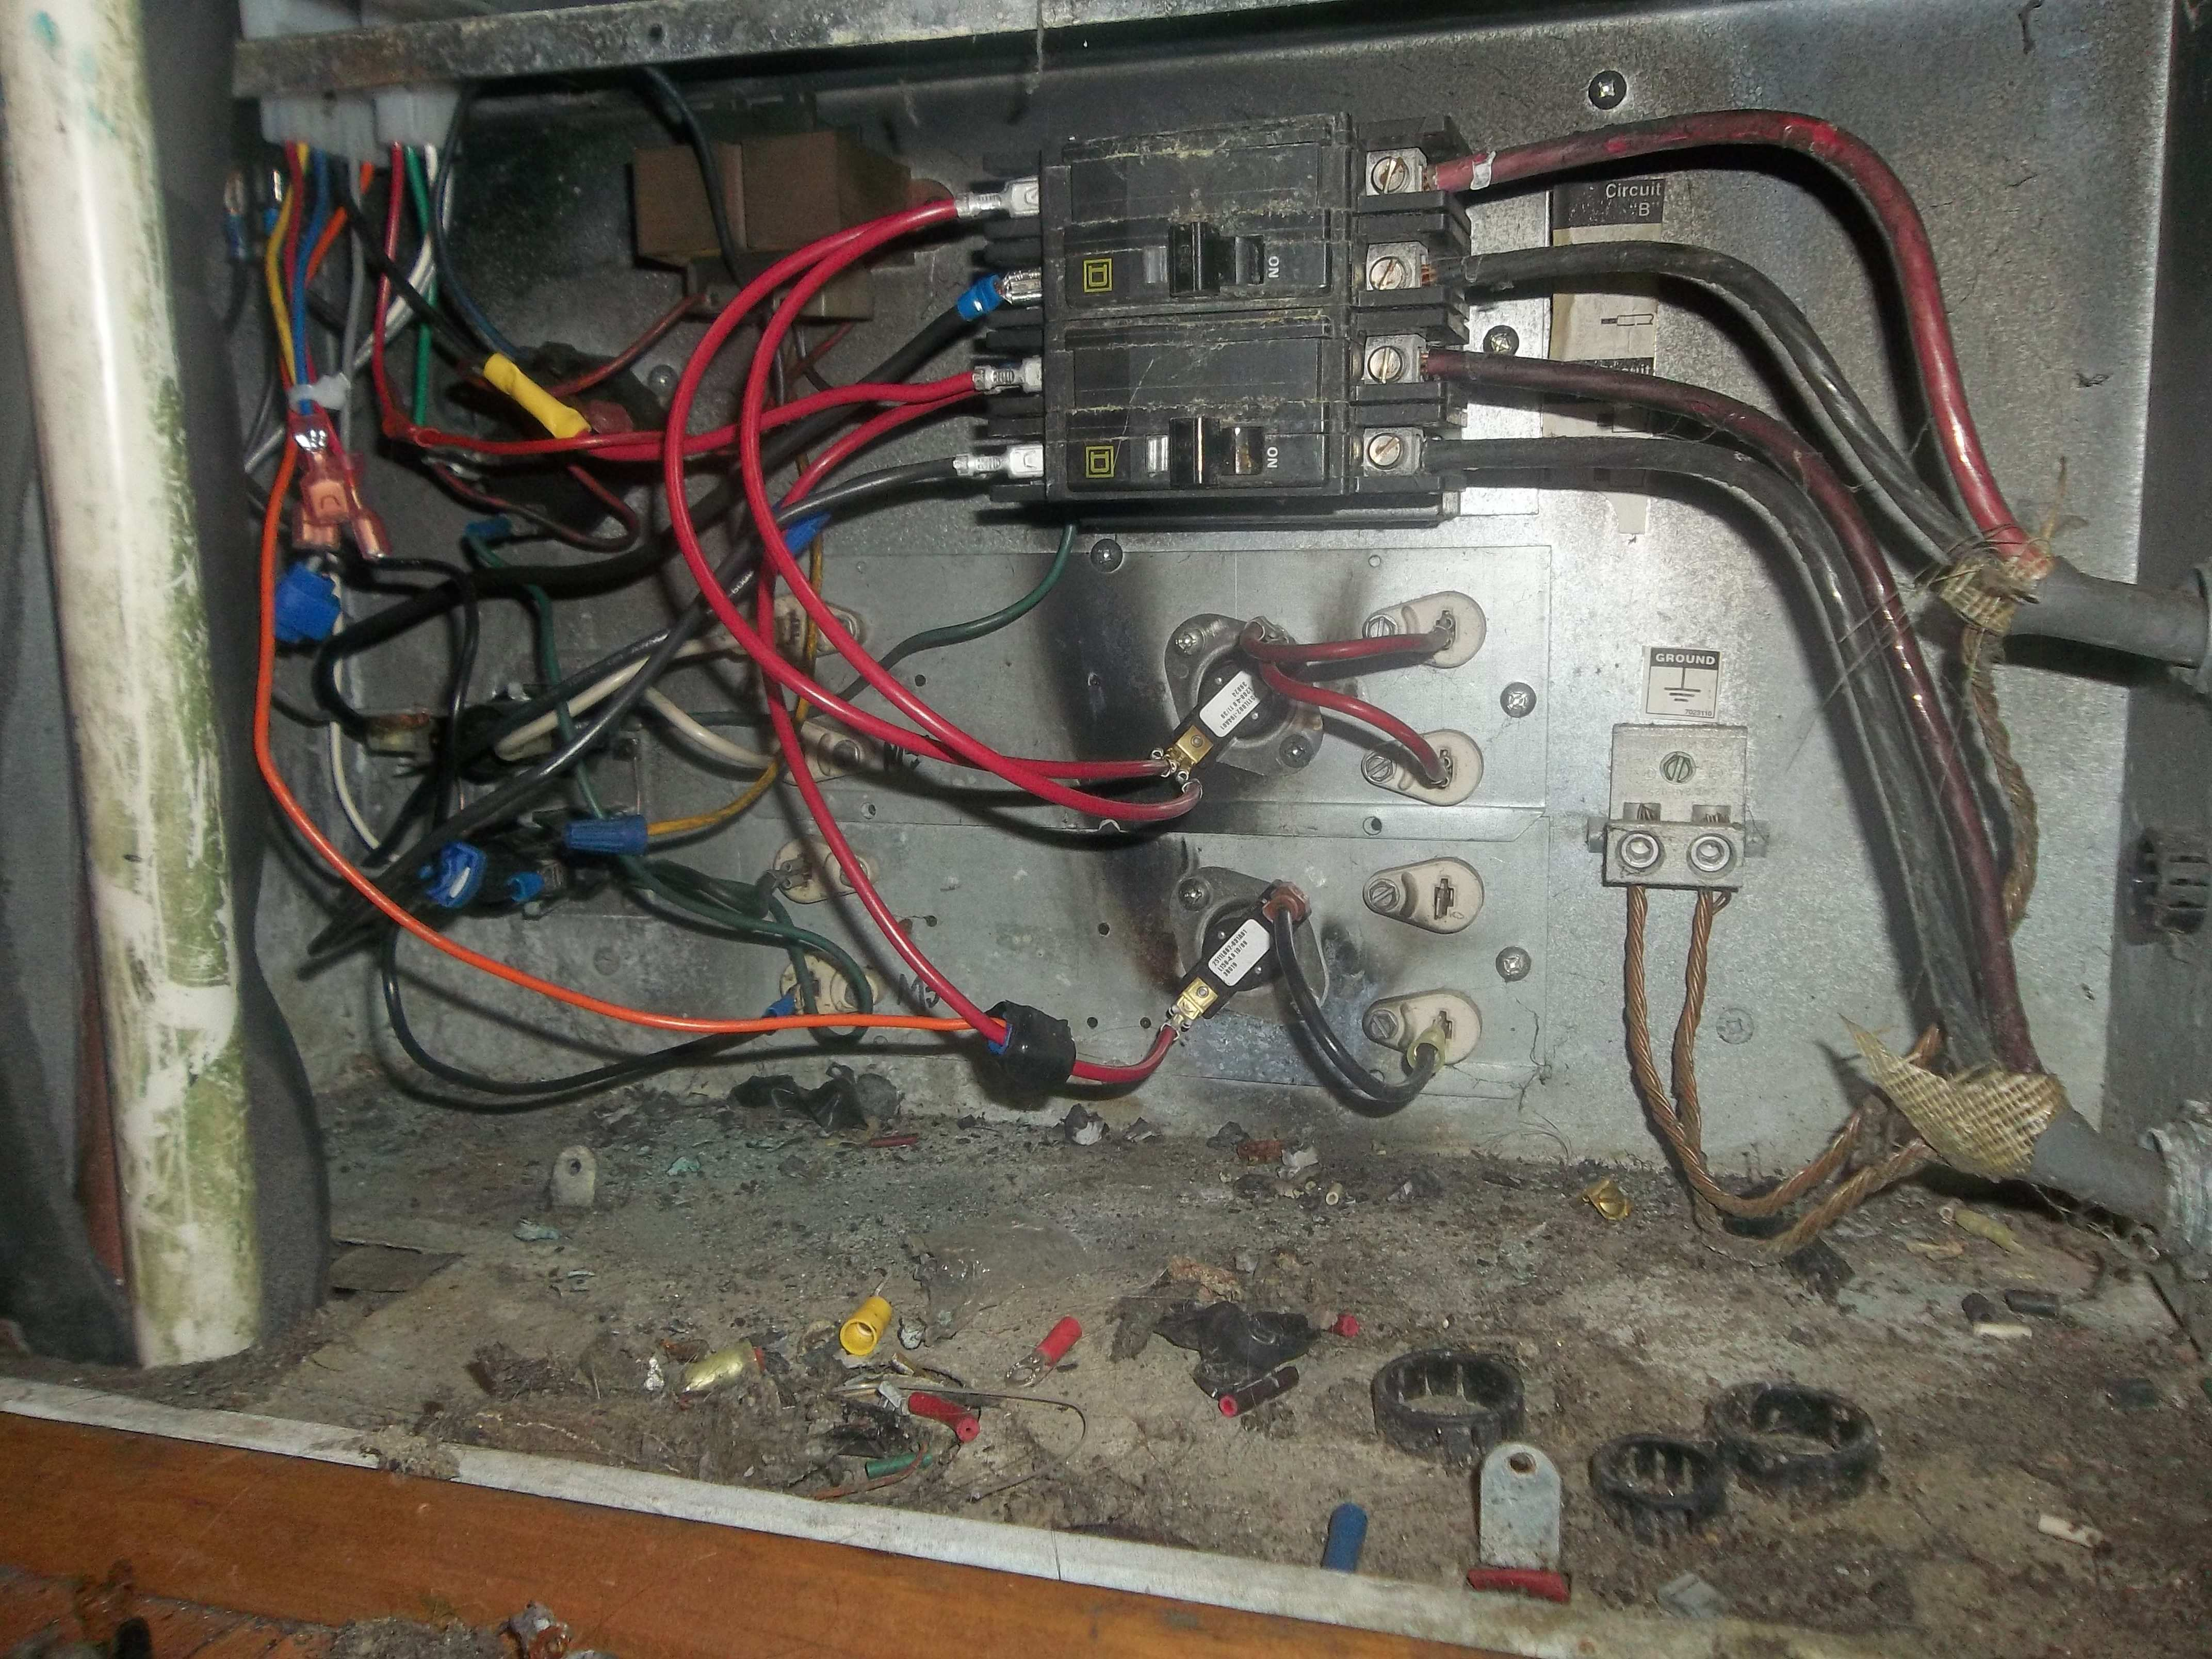 Wiring Diagram Intertherm Electric Furnace Wiring Diagram Coleman - Coleman Mobile Home Electric Furnace Wiring Diagram